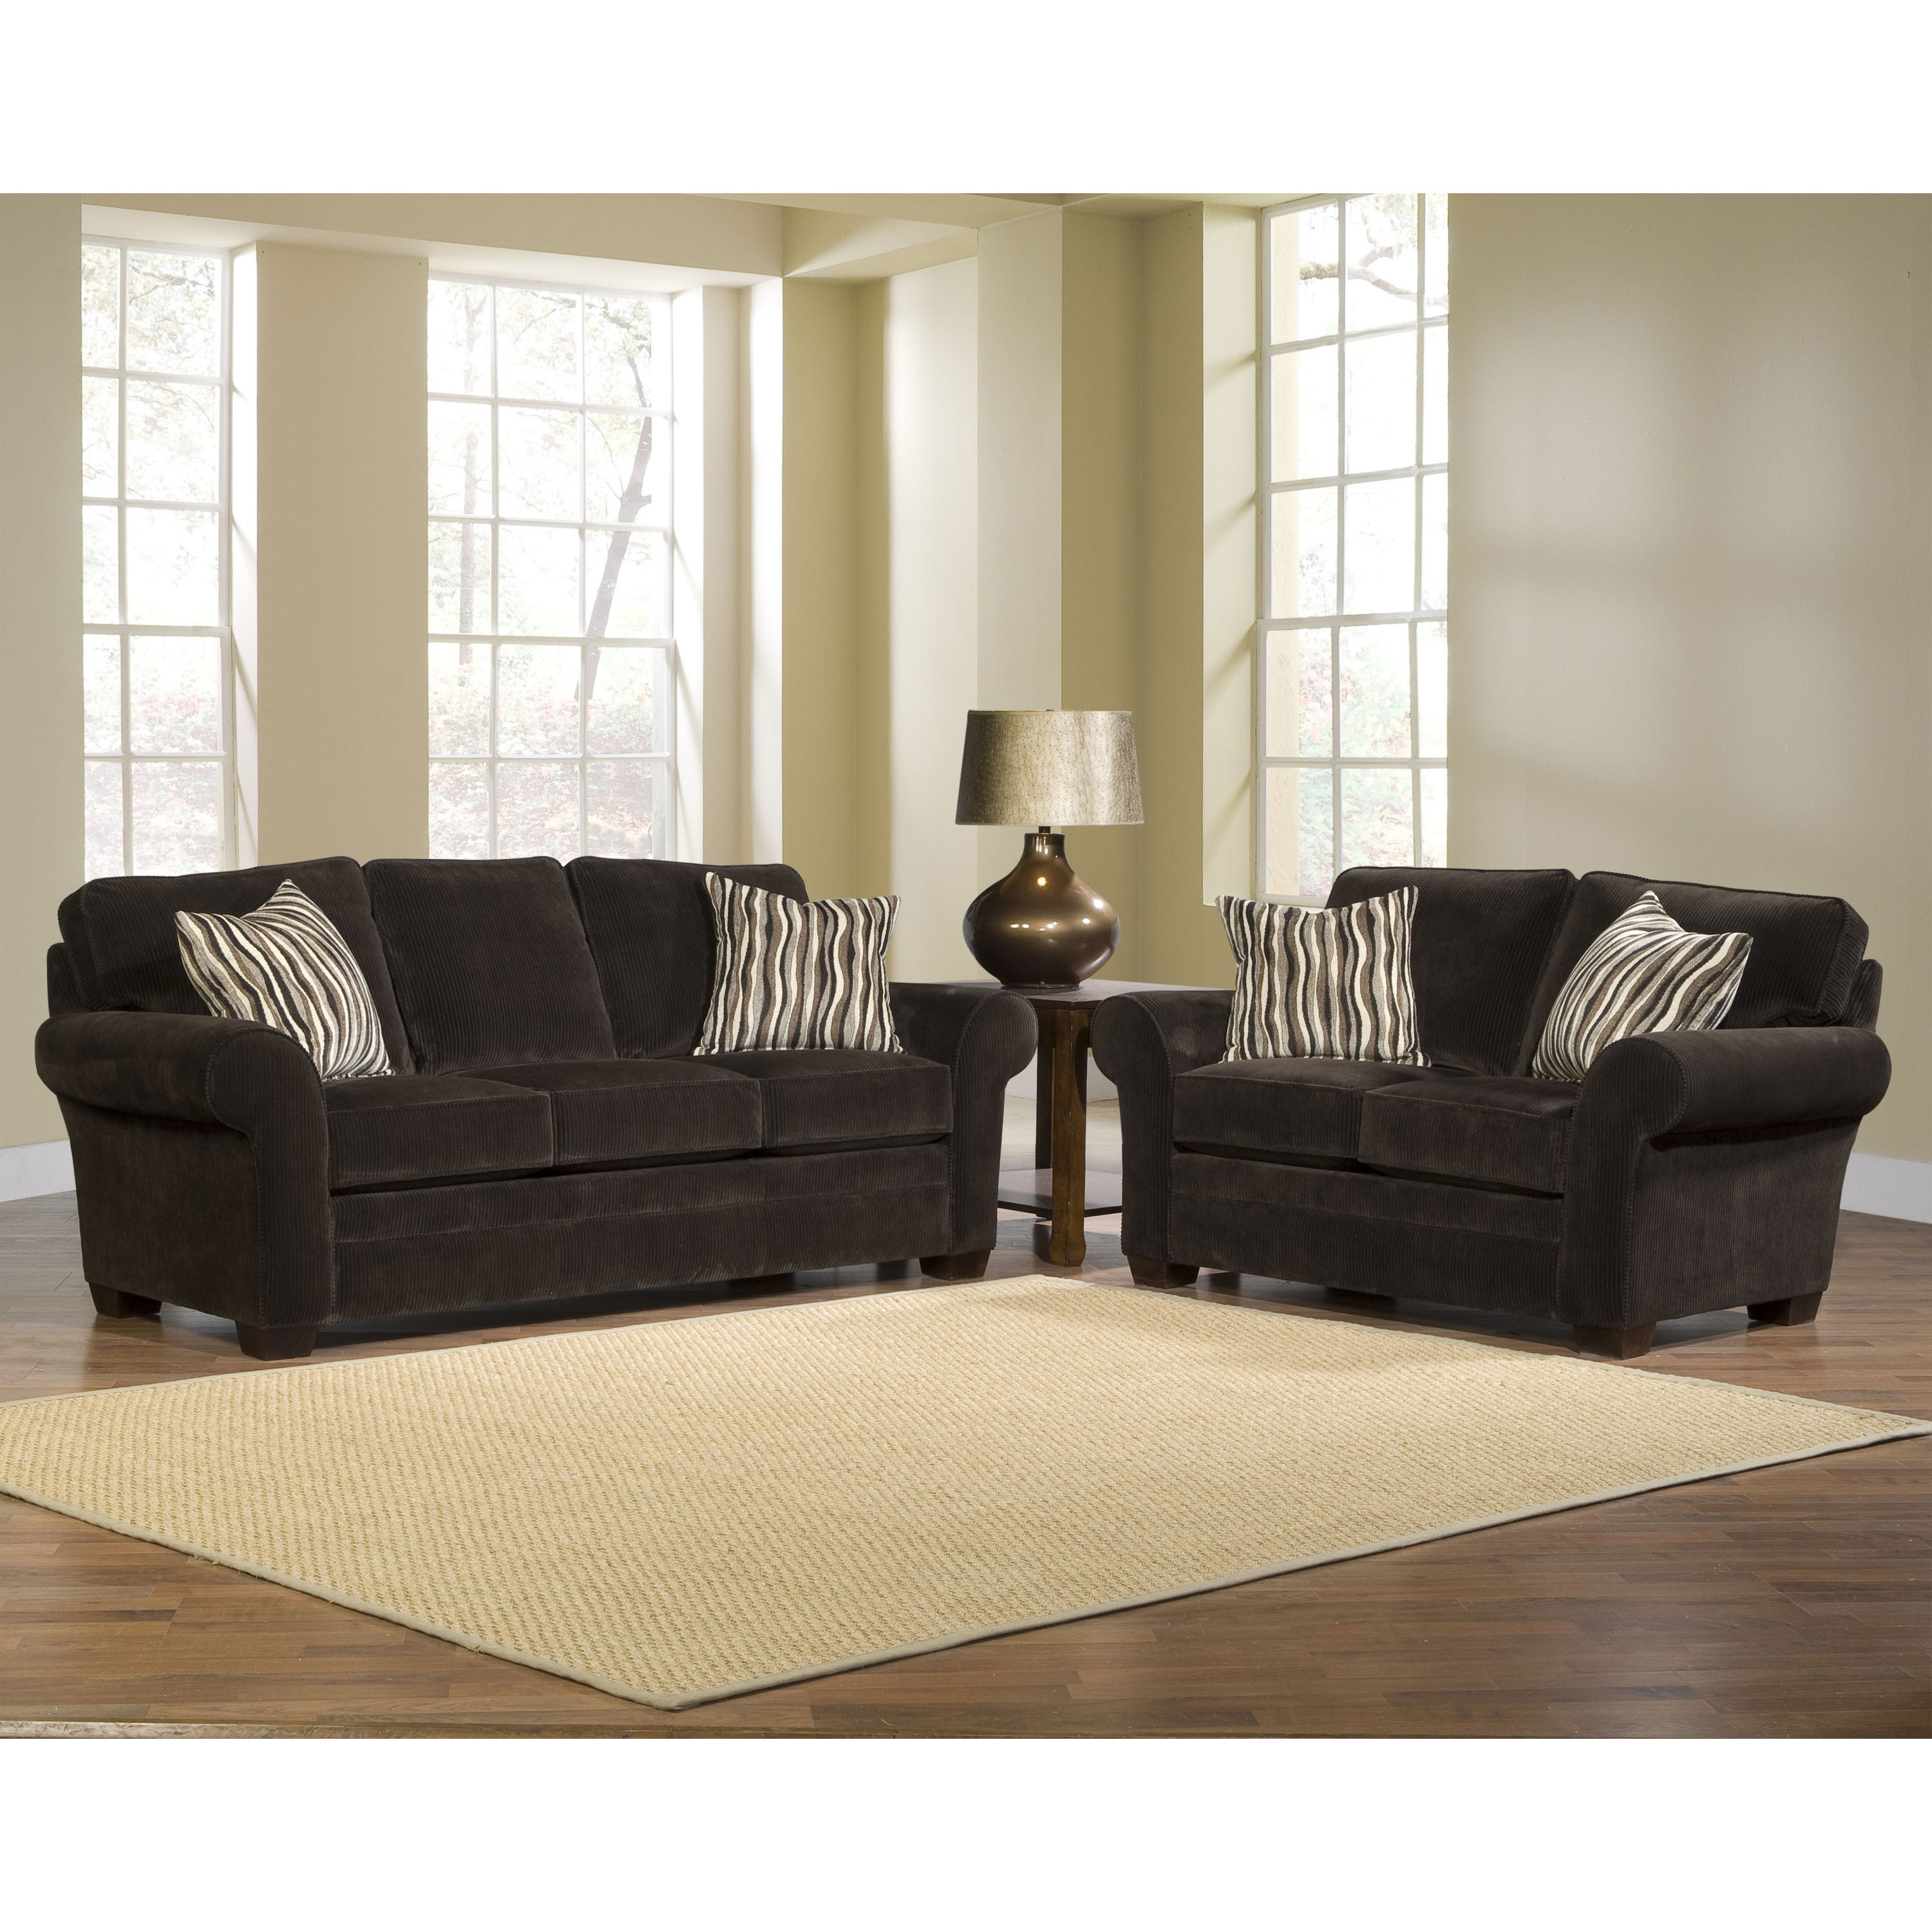 Broyhill Zoey 2-piece Dark Chocolate Sofa/ Loveseat/ Pillows Set